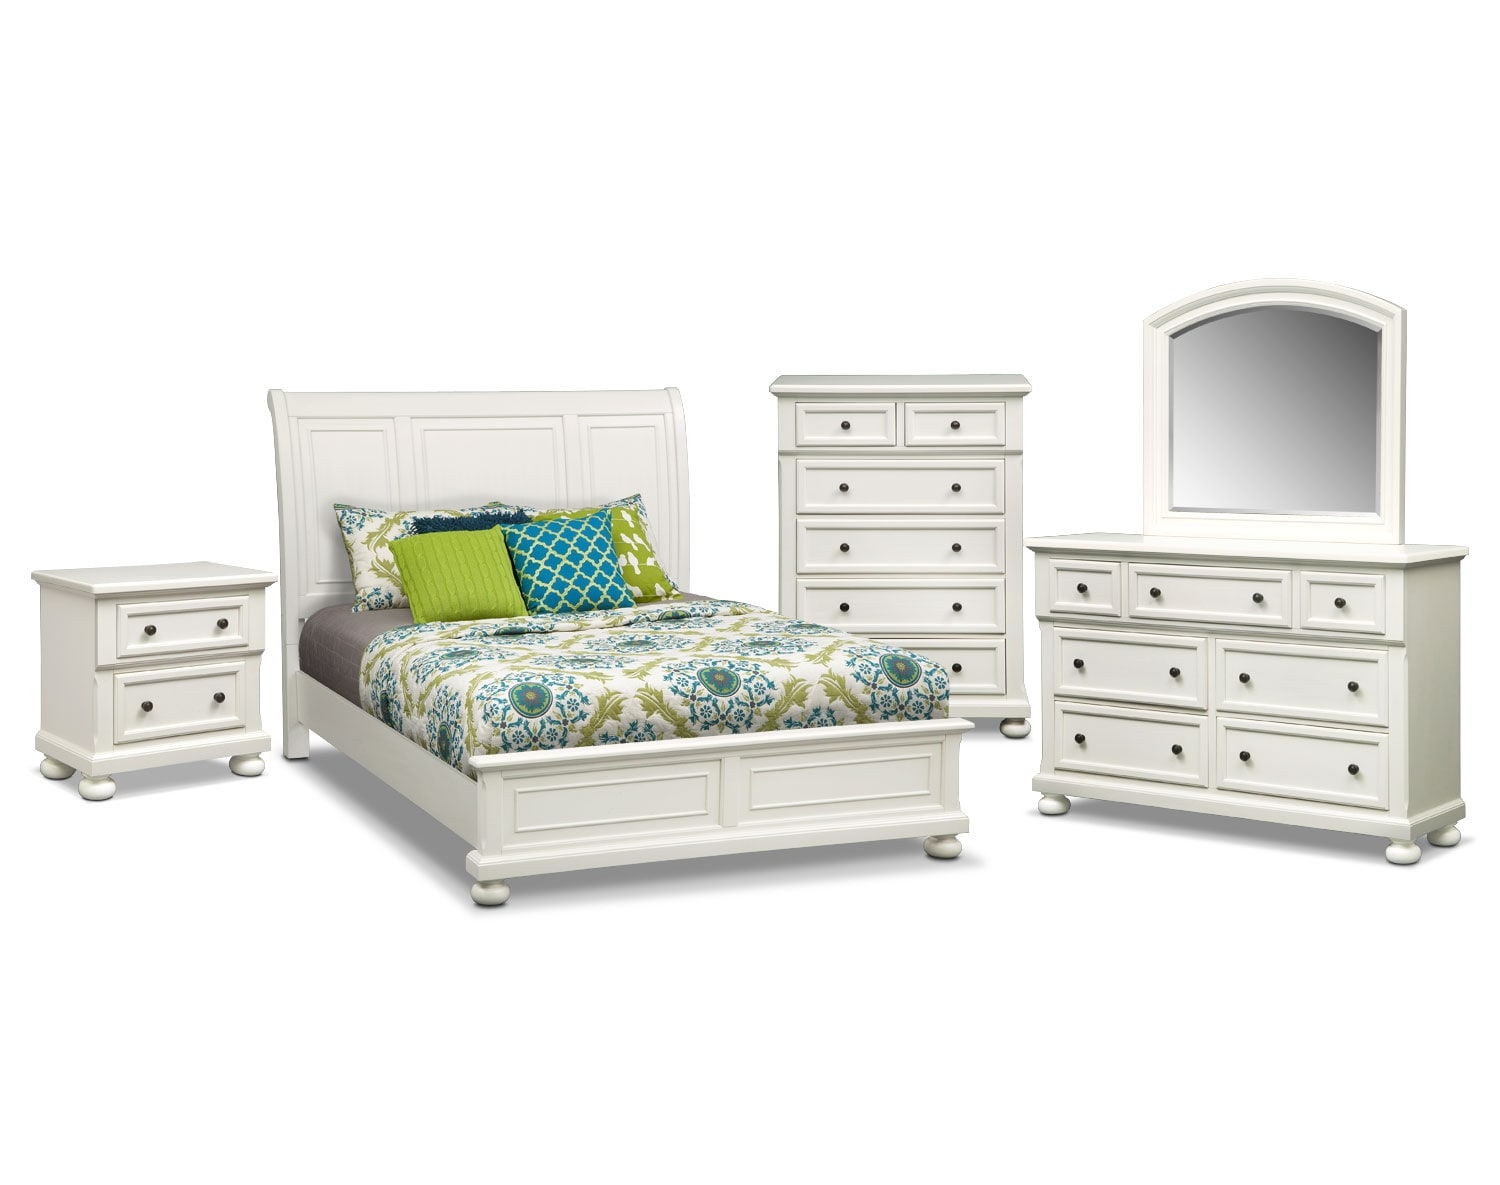 The Hanover Panel Bedroom Collection - White